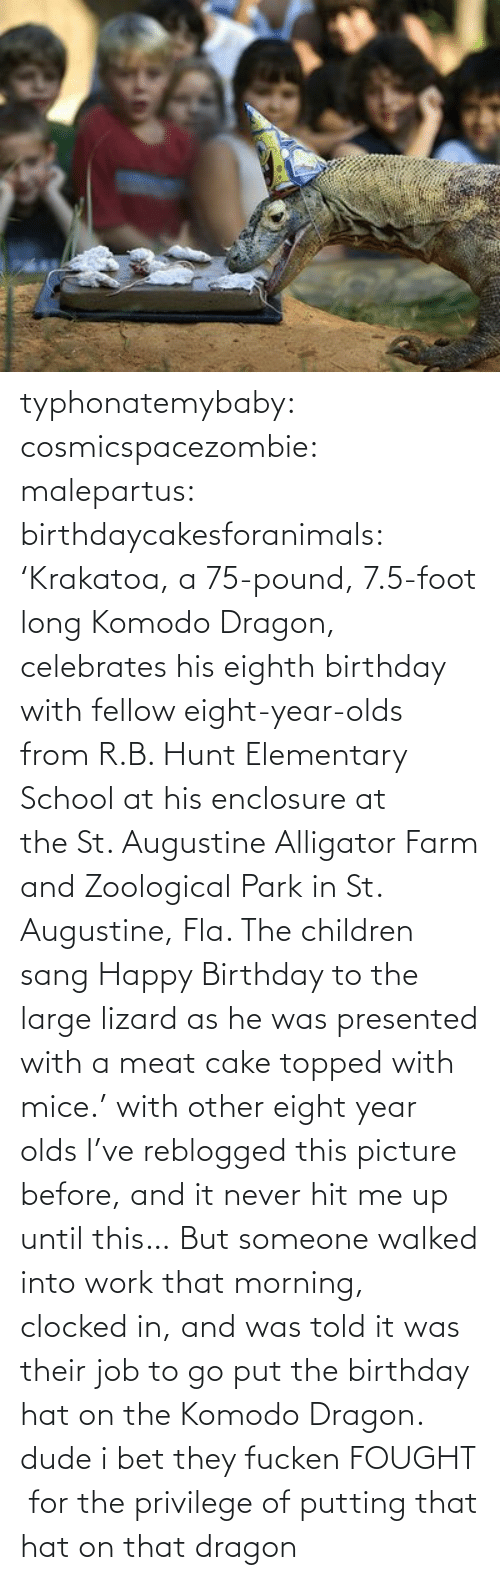 krakatoa: typhonatemybaby:  cosmicspacezombie:  malepartus:  birthdaycakesforanimals:  'Krakatoa, a 75-pound, 7.5-foot long Komodo Dragon, celebrates his eighth birthday with fellow eight-year-olds from R.B. Hunt Elementary School at his enclosure at the St. Augustine Alligator Farm and Zoological Park in St. Augustine, Fla. The children sang Happy Birthday to the large lizard as he was presented with a meat cake topped with mice.'  with other eight year olds  I've reblogged this picture before, and it never hit me up until this… But someone walked into work that morning, clocked in, and was told it was their job to go put the birthday hat on the Komodo Dragon.  dude i bet they fucken FOUGHT  for the privilege of putting that hat on that dragon